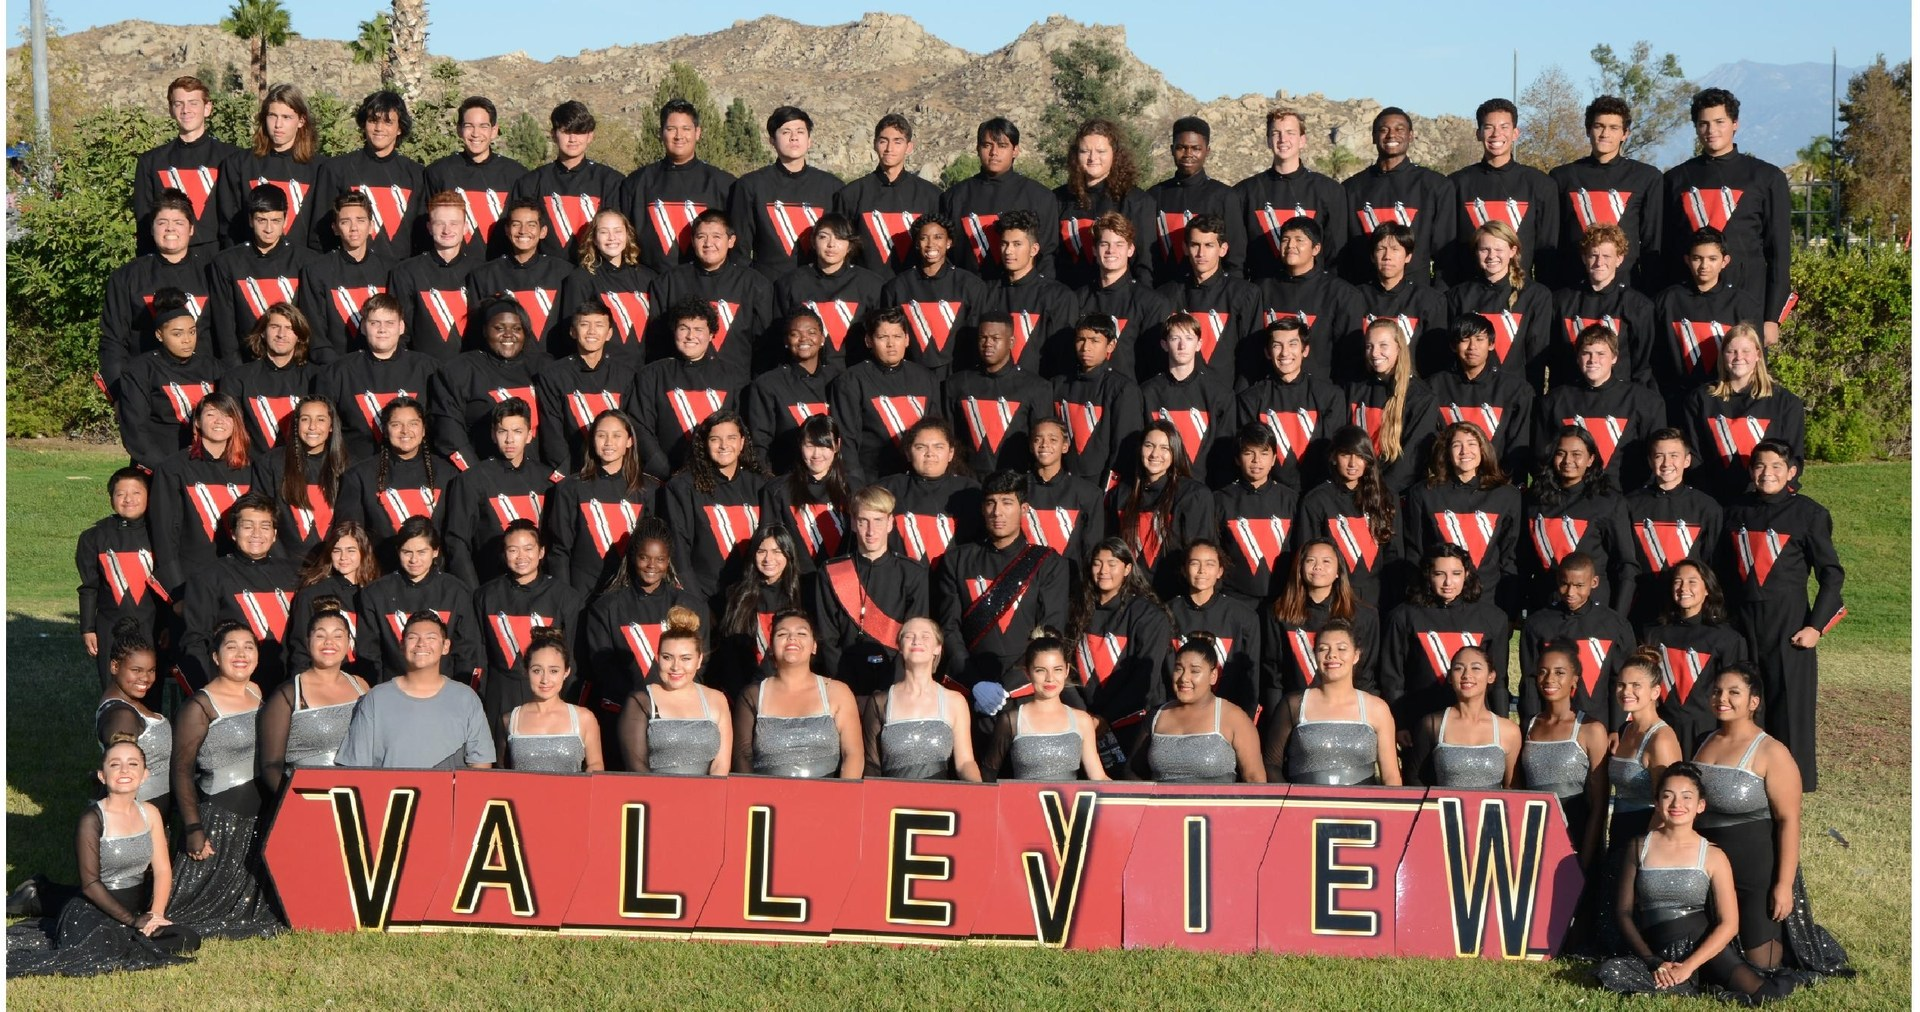 The Crimson Regiment Marching Band from Valley View High School.